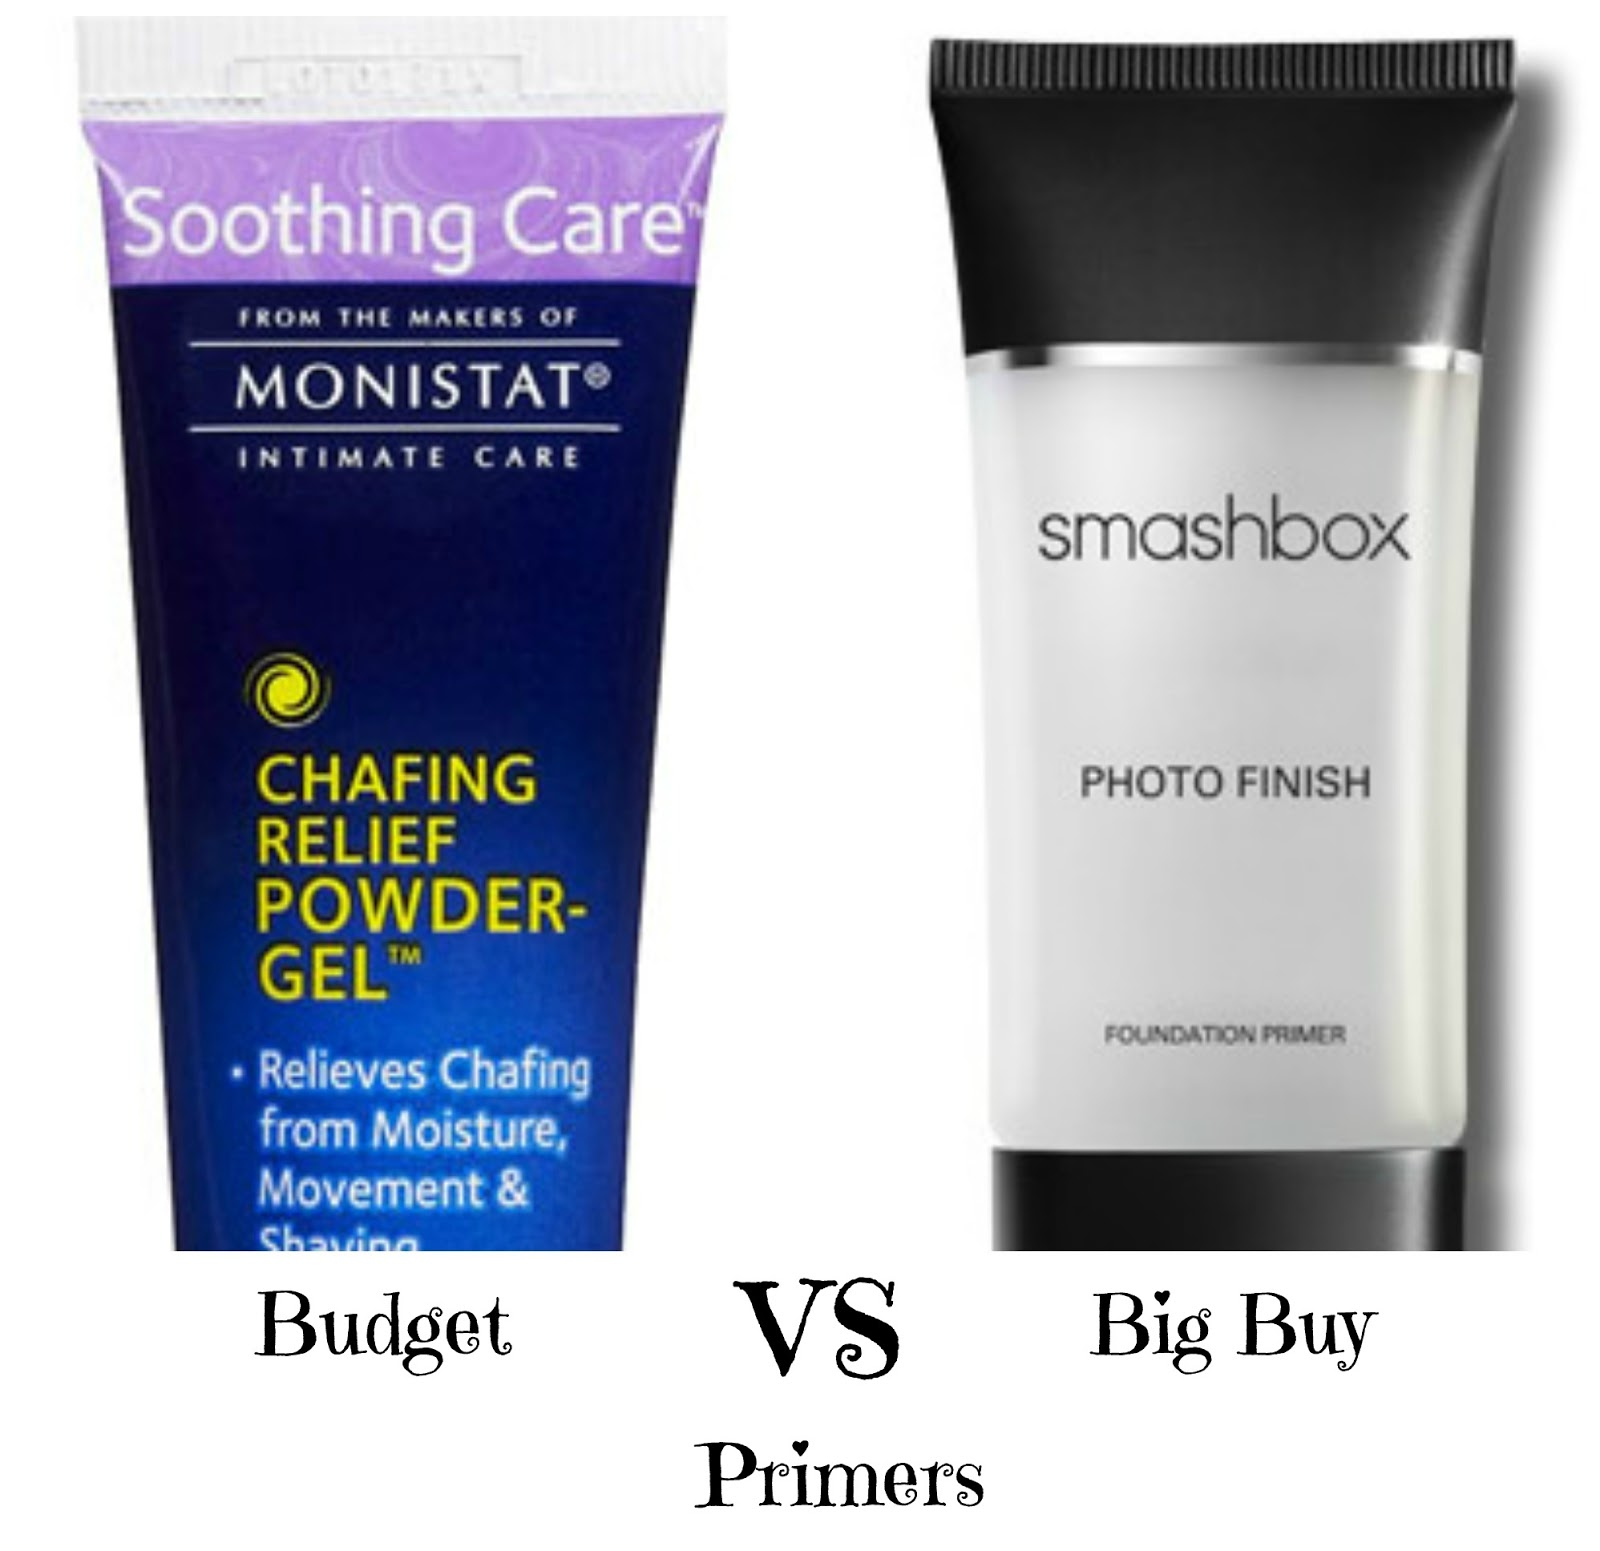 Mad Makeup Love Budget Vs Big Buy Facial Primers Monistat Chafing Relief Powder Gel You Guys Saw This Photo In My Last Post Where I Said That Wearing A Primer Is One Of 5 Rules Thumb For Smashbox